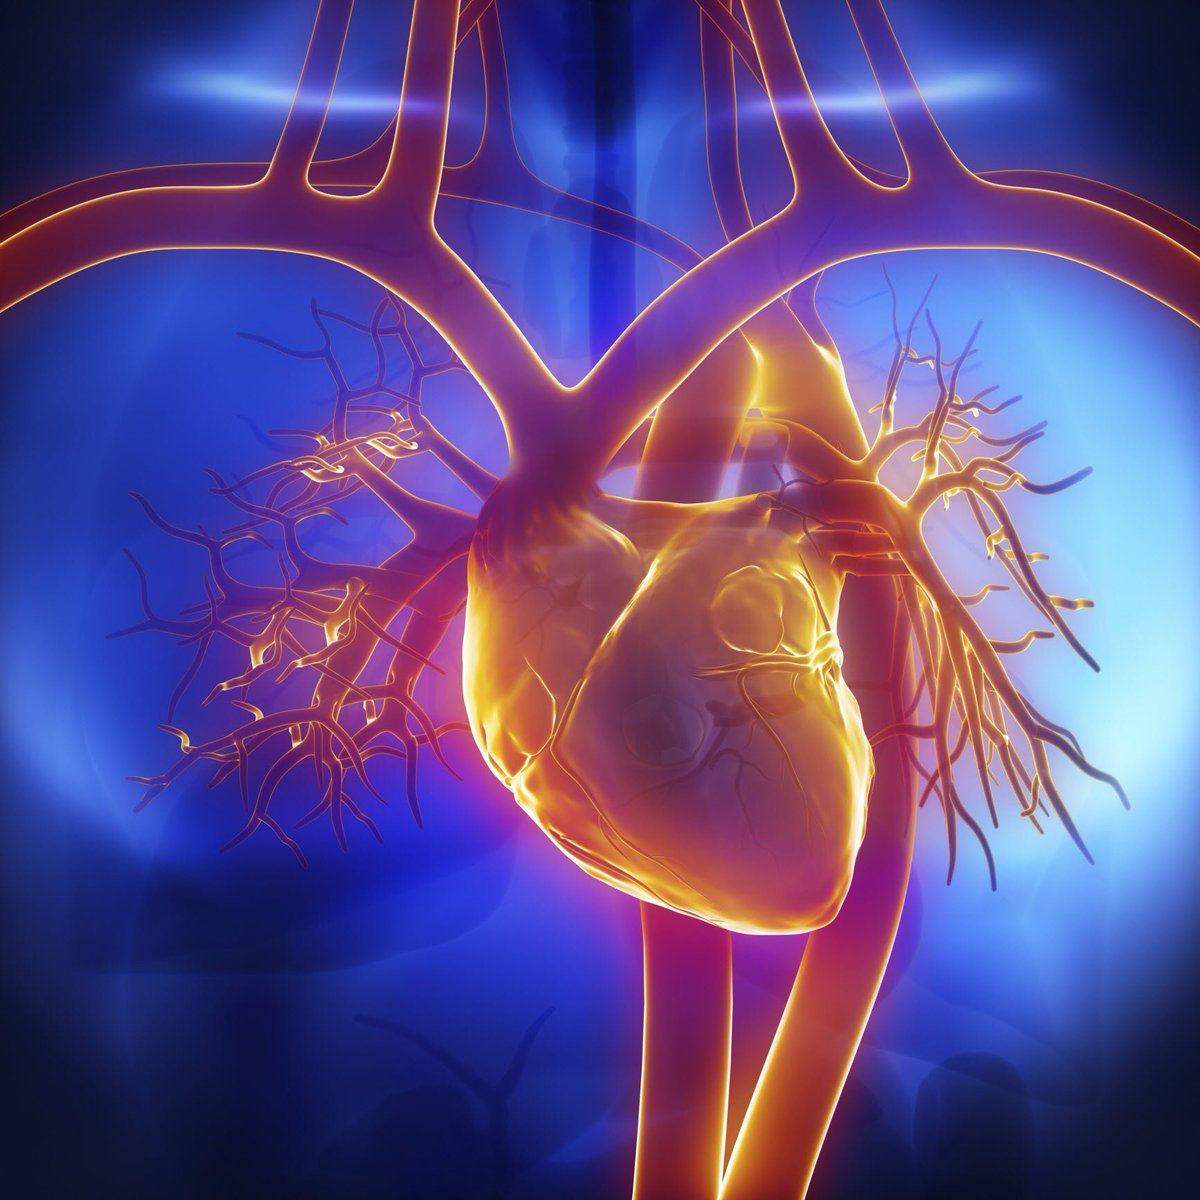 Wow: Each person has over 60,000 miles of blood vessels, enough to circumnavigate the world twice #heart #fact https://t.co/ulAIZZmqVX